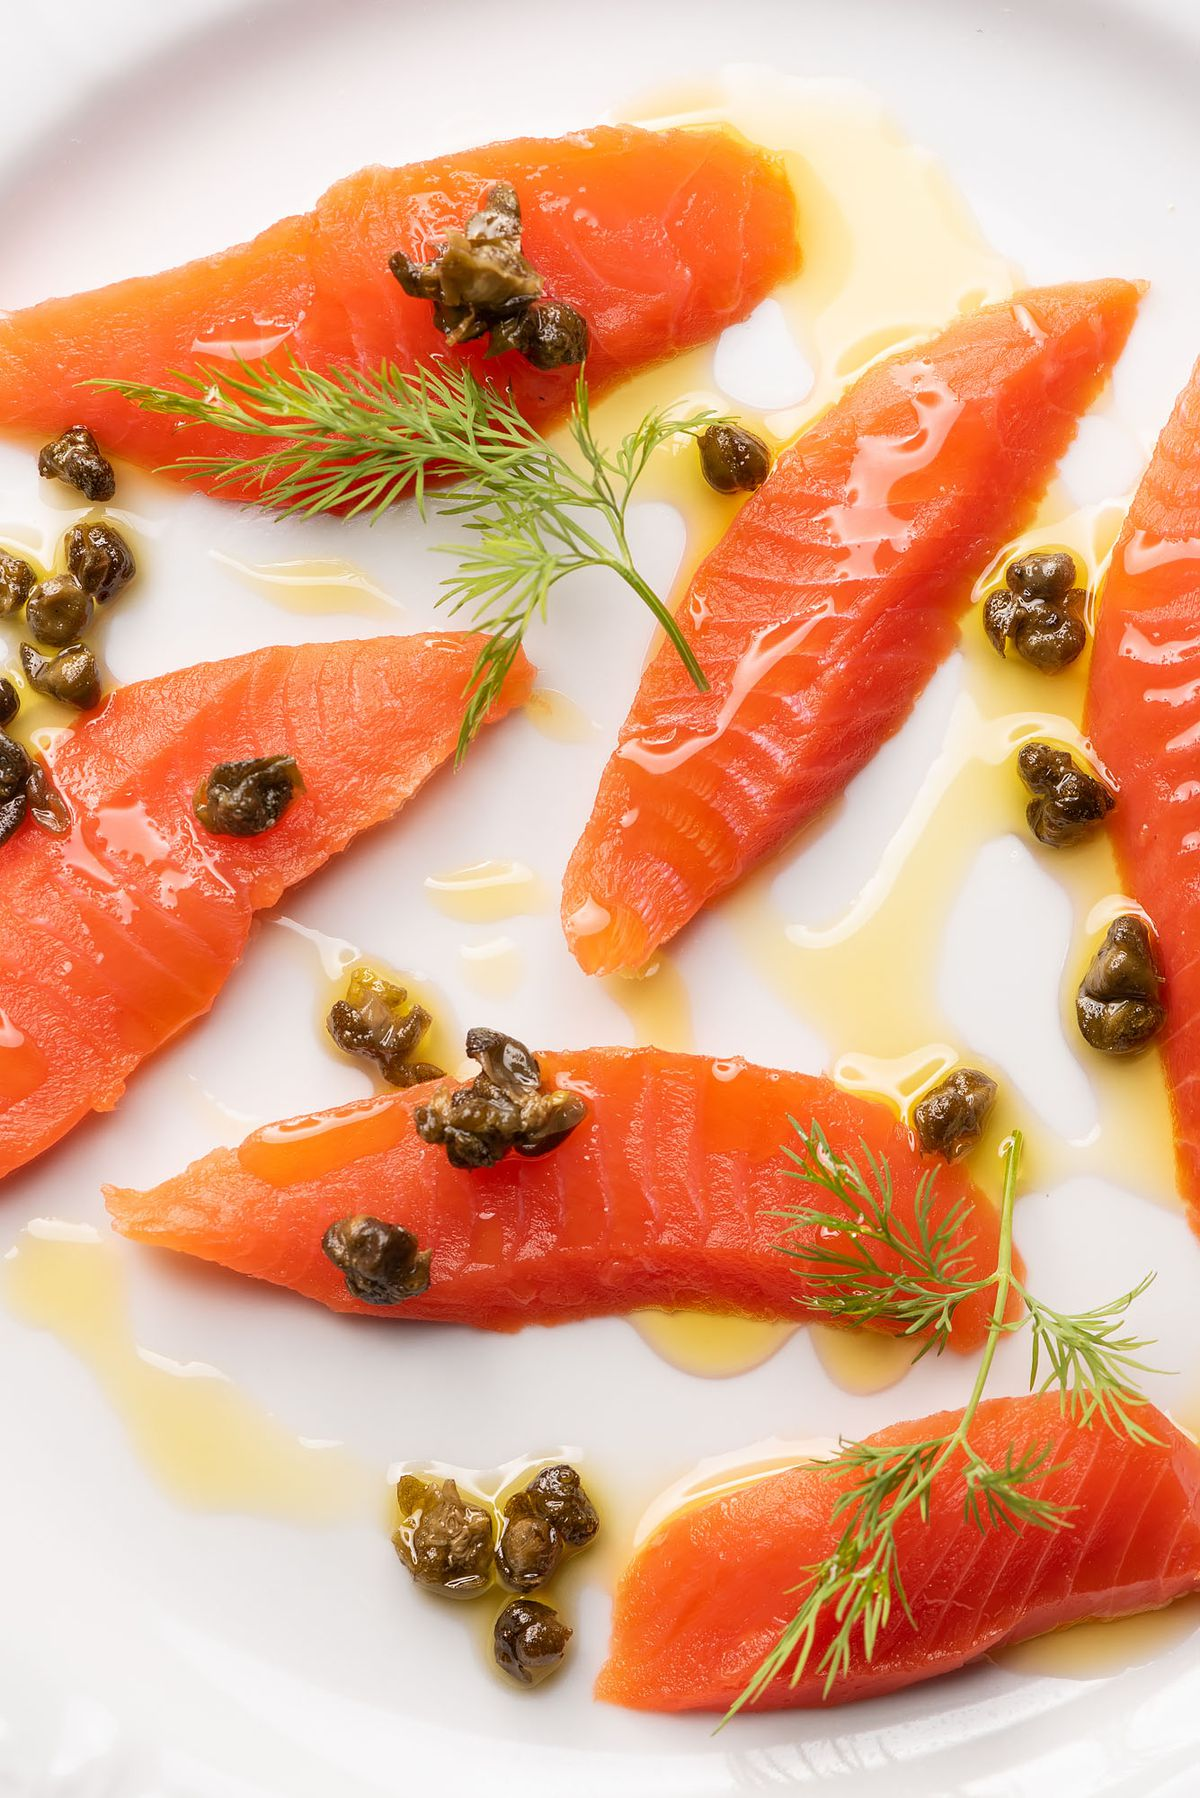 Sicilian crudo with capers and olive oil.